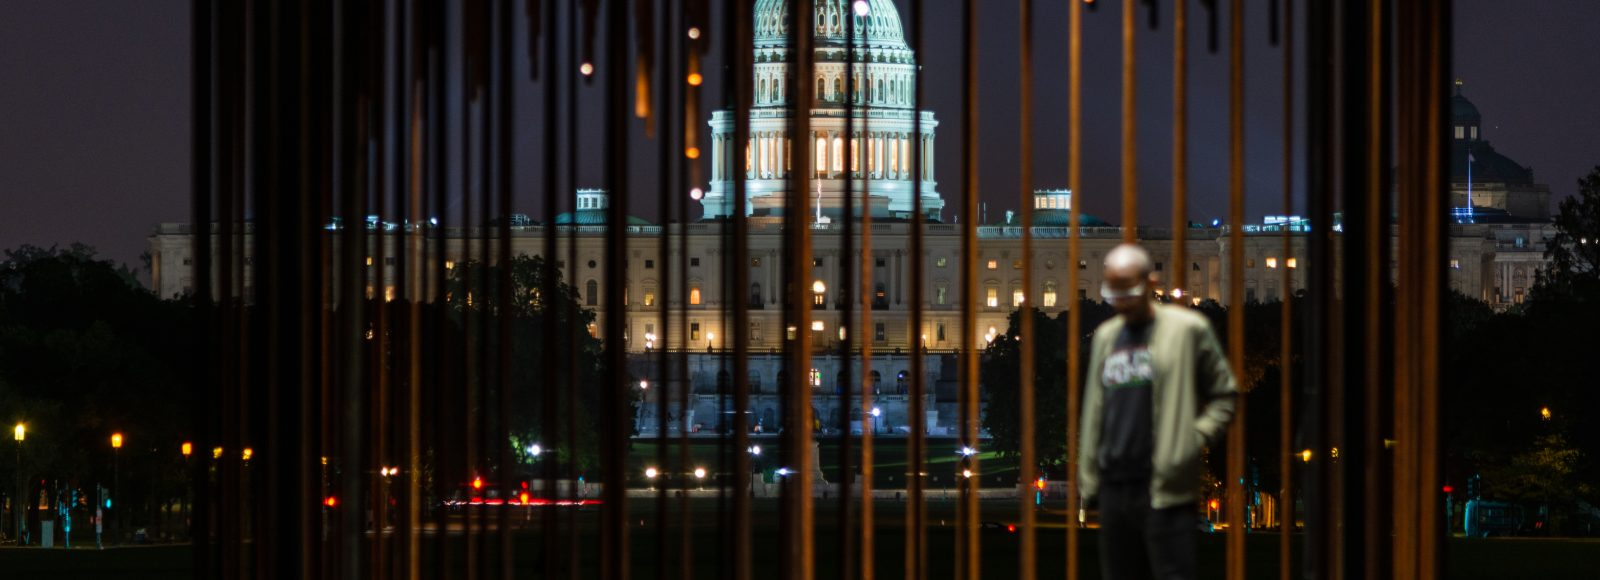 View of Capitol building in Washington, DC. illuminated at night, through bars. Black man stands in cage.